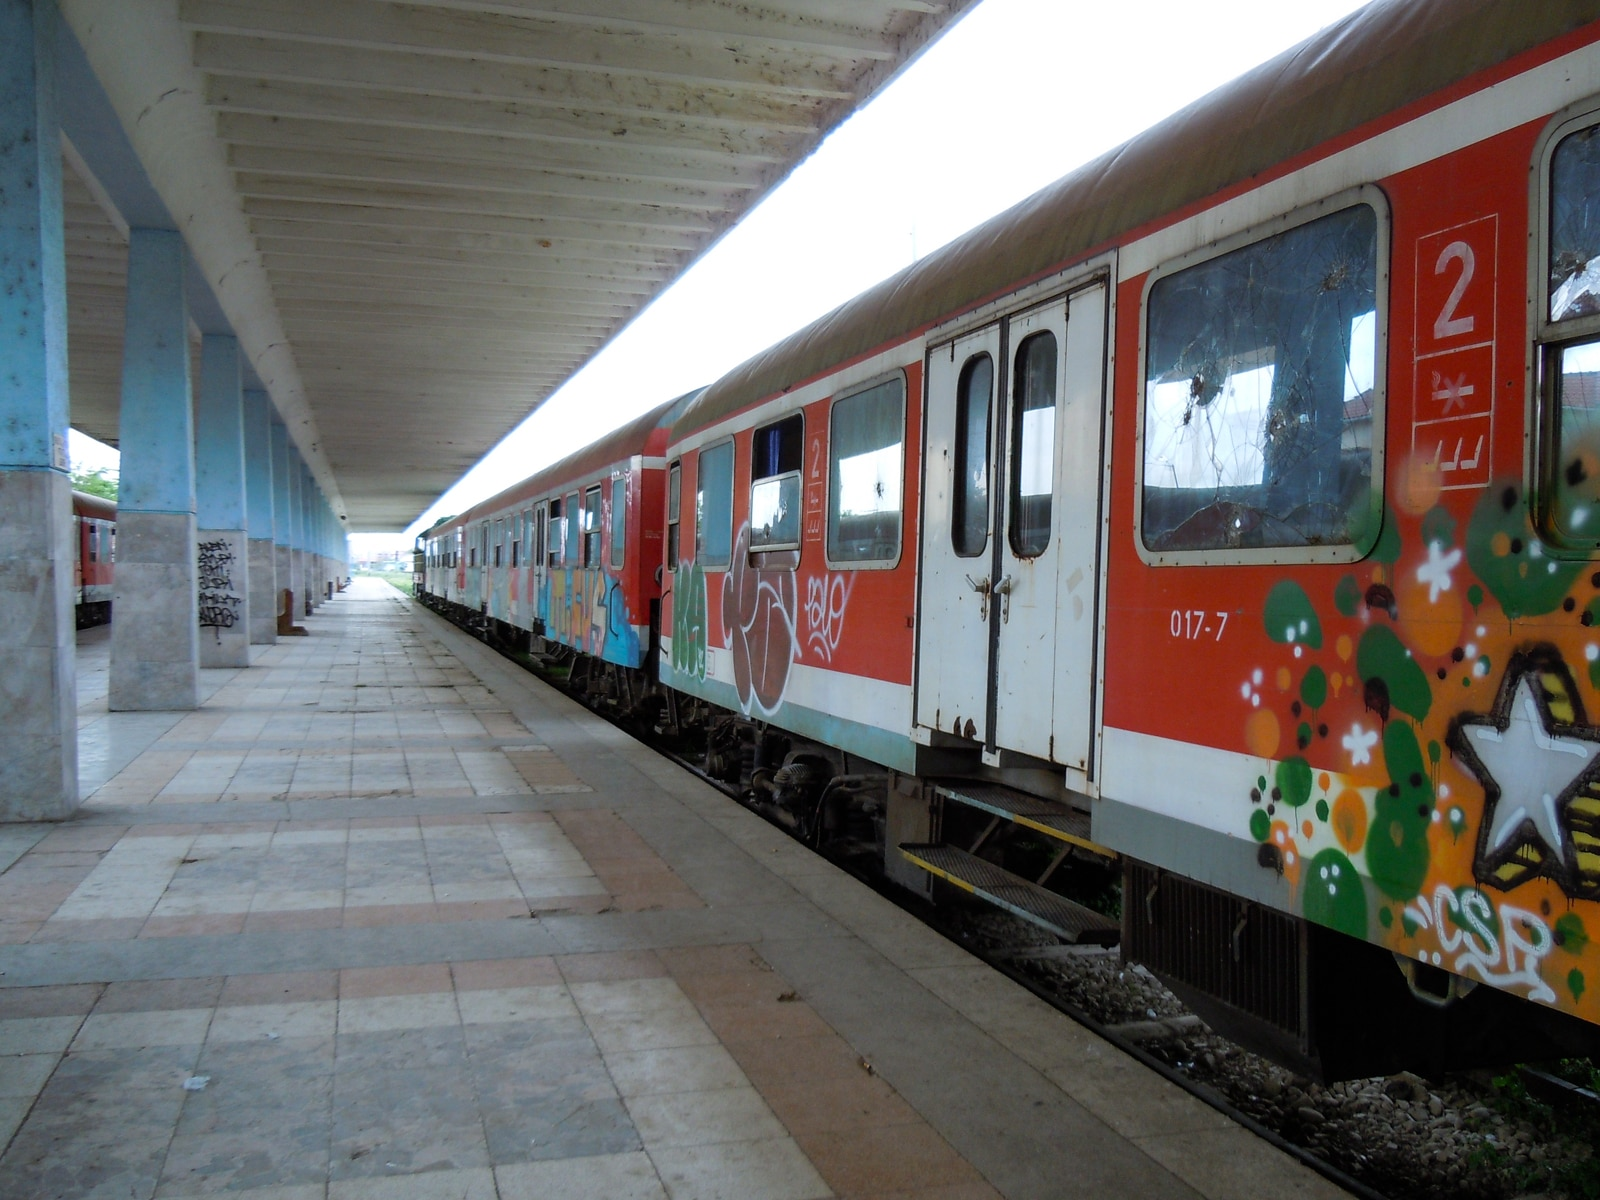 The station in Tirana has only two platforms - enough for Albania's hardly overloaded rail network